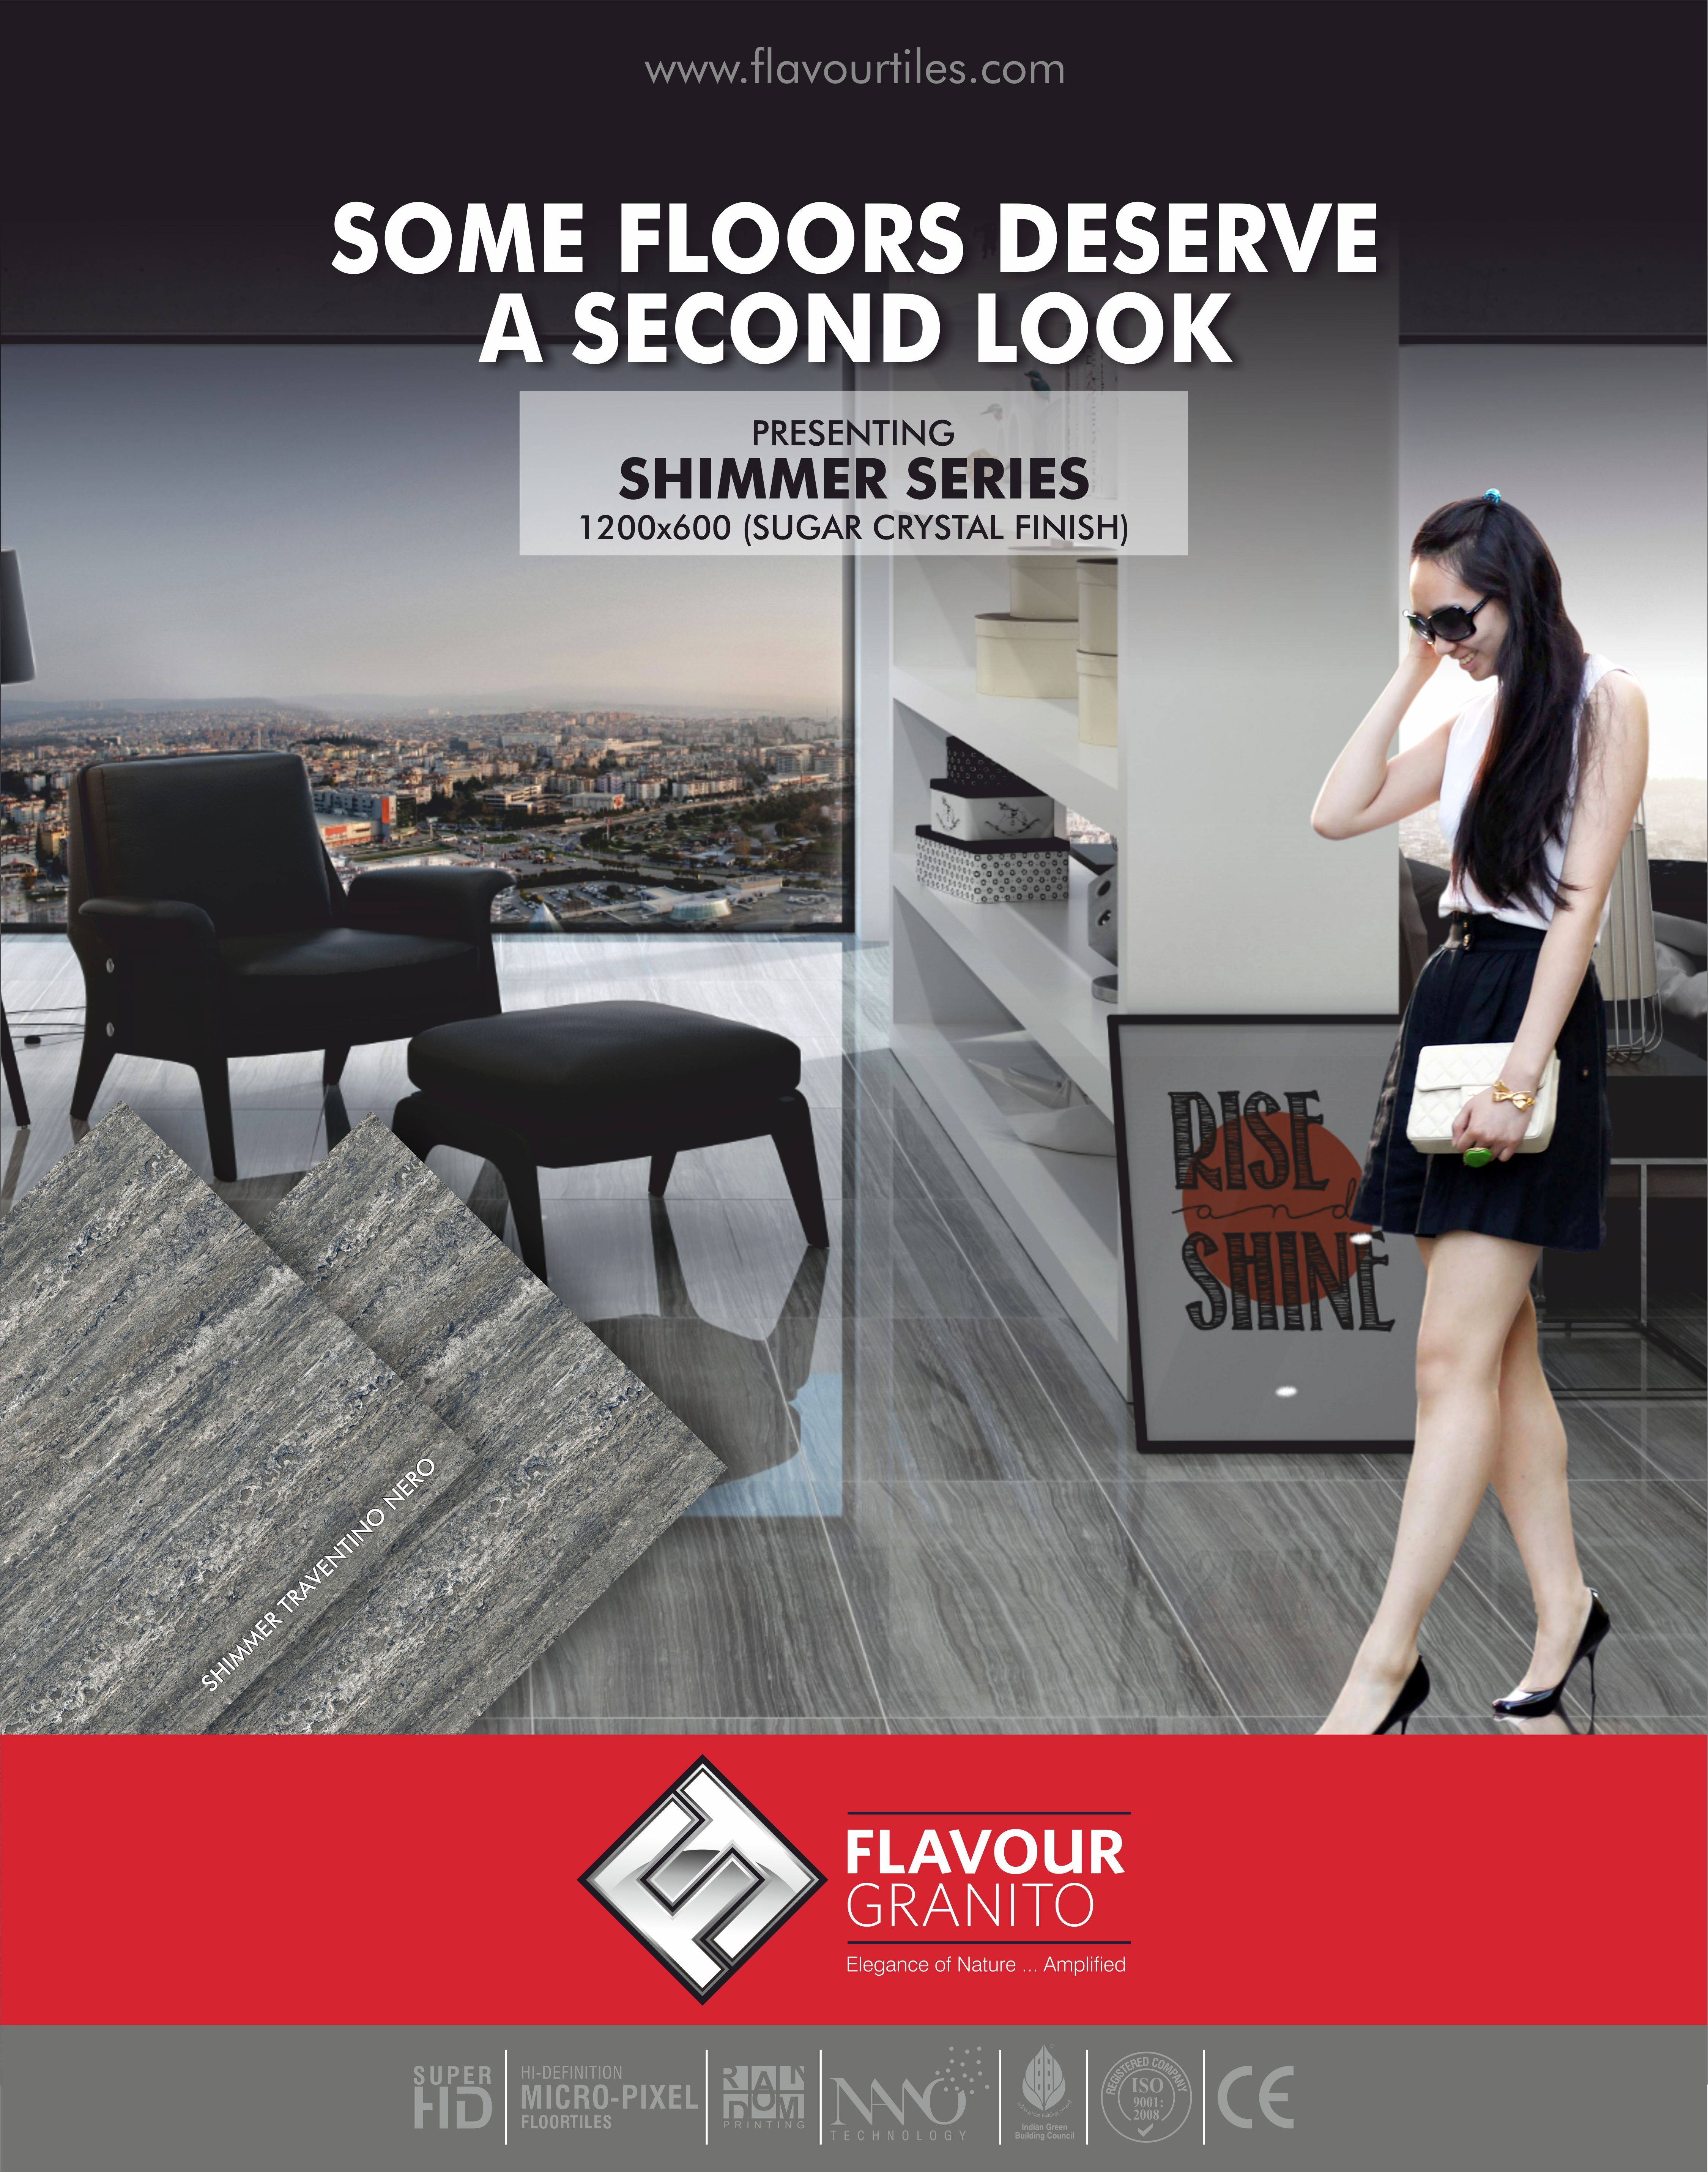 Some Floor Deserve A Second Look Shimmer Series Shimmer Traventino Nero 1200x600mm Sugar Crystal Finish Phones Tile Manufacturers Flooring Vitrified Tiles